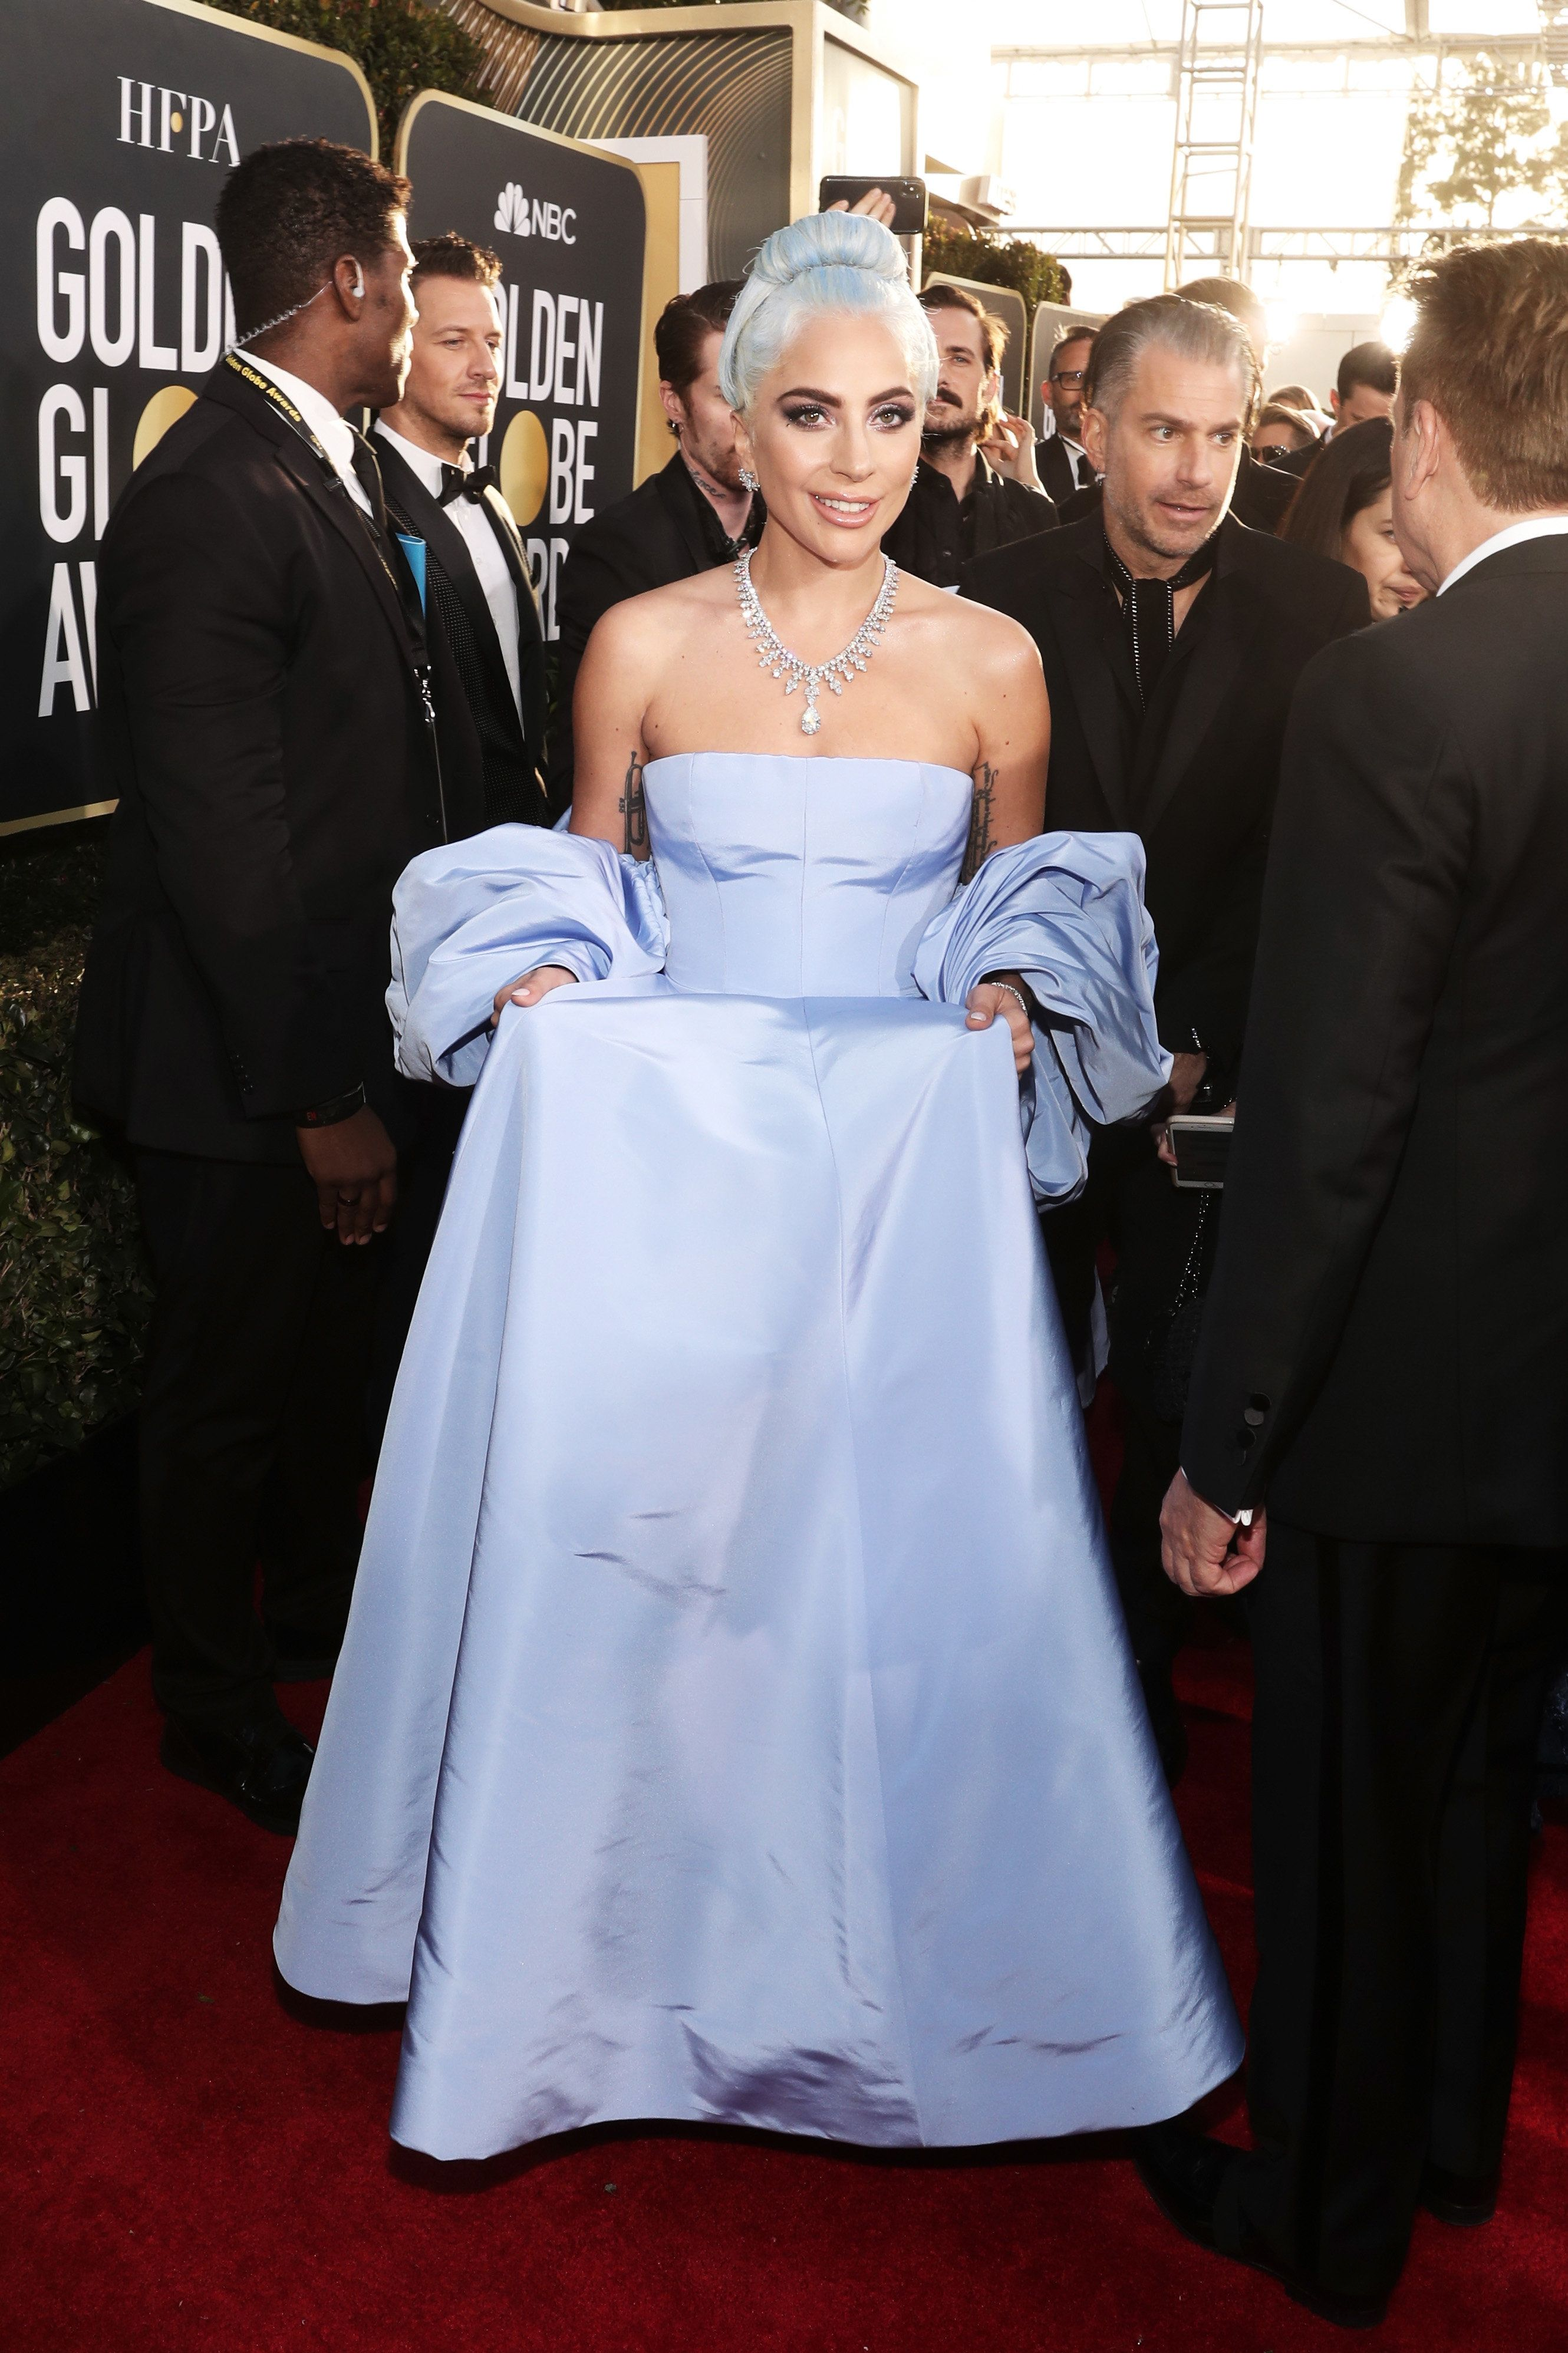 BEVERLY HILLS, CA - JANUARY 06:  76th ANNUAL GOLDEN GLOBE AWARDS -- Pictured: Lady Gaga arrives to the 76th Annual Golden Globe Awards held at the Beverly Hilton Hotel on January 6, 2019. --  (Photo by Todd Williamson/NBC/NBCU Photo Bank)